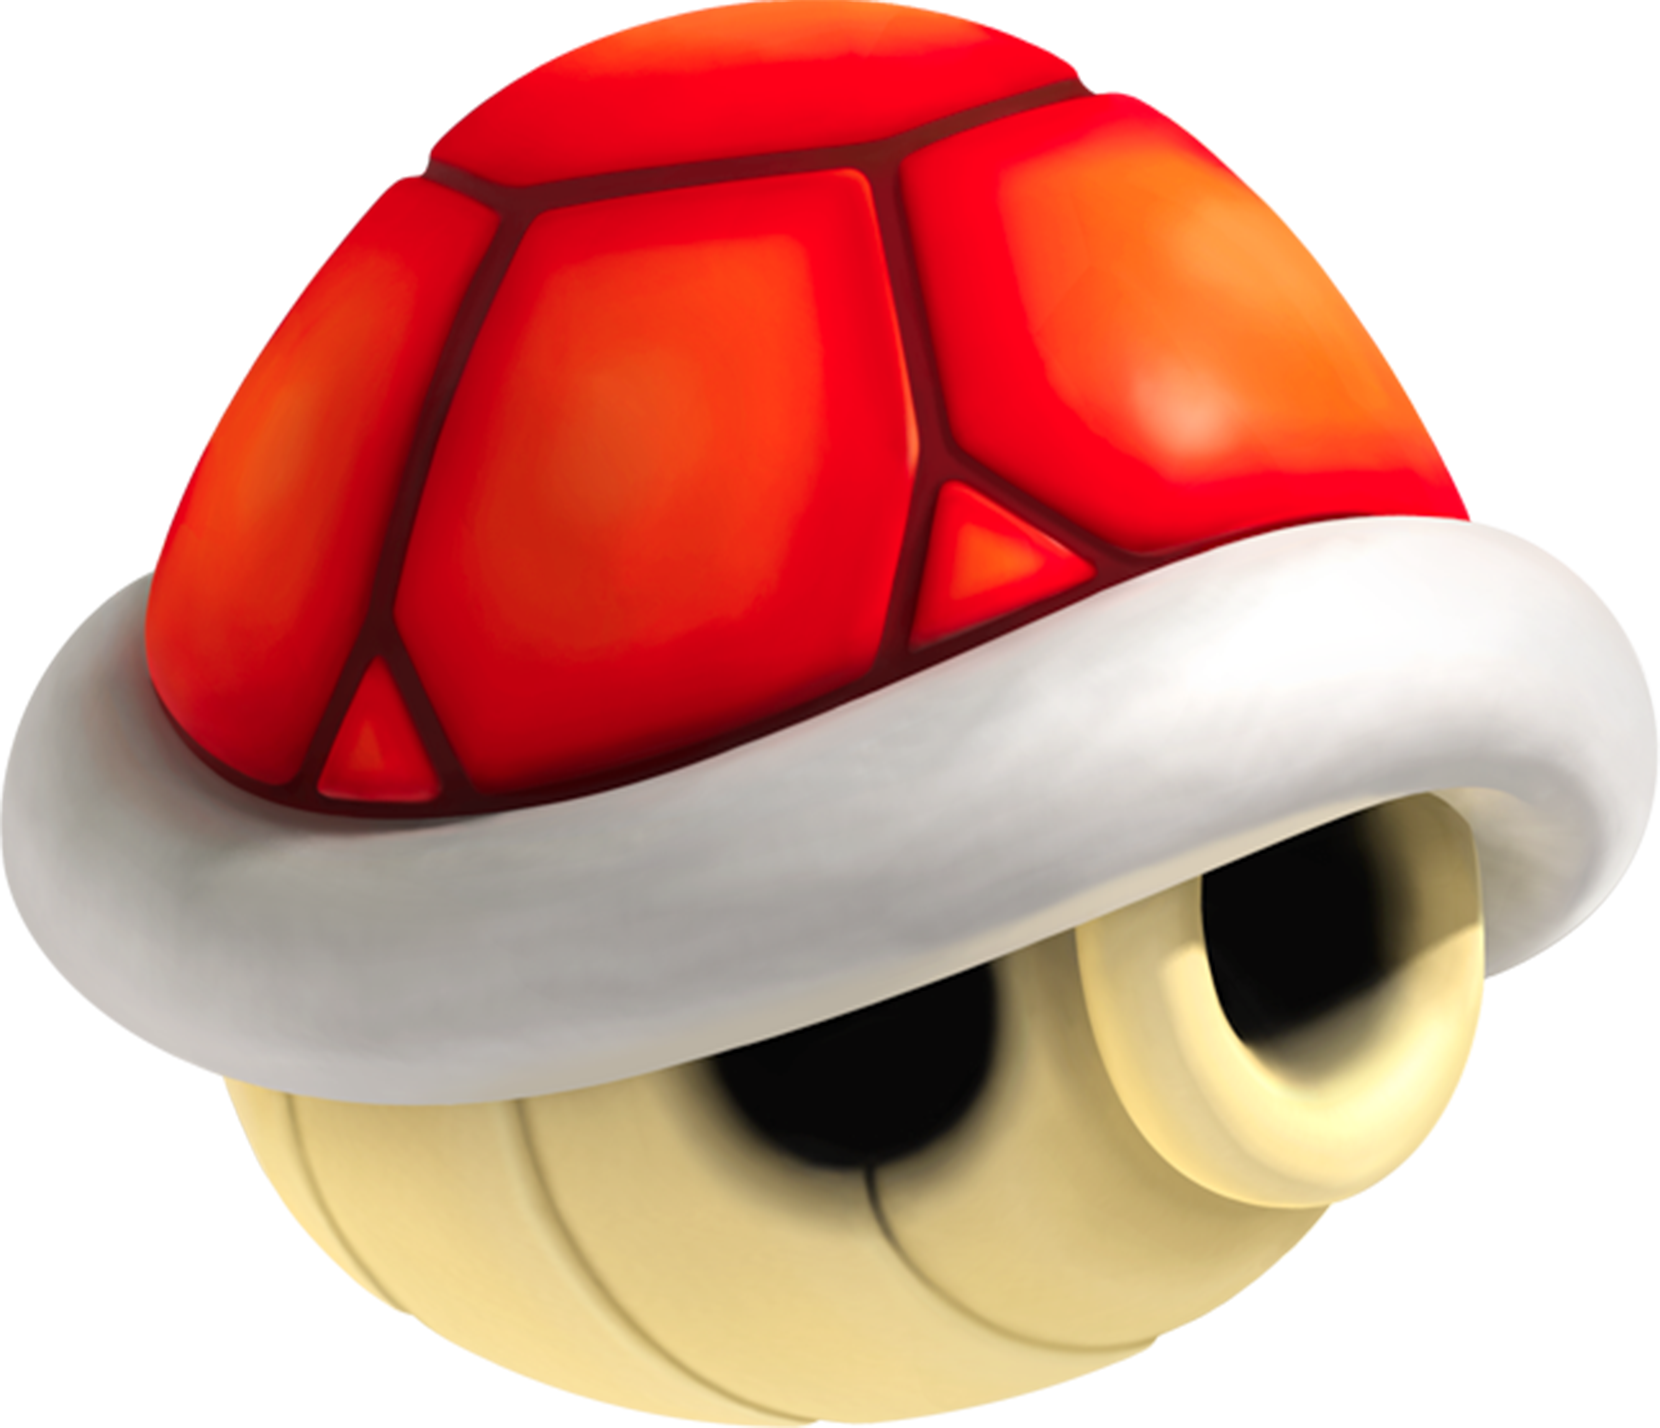 File:Red Shell - Mario Kart Wii.png